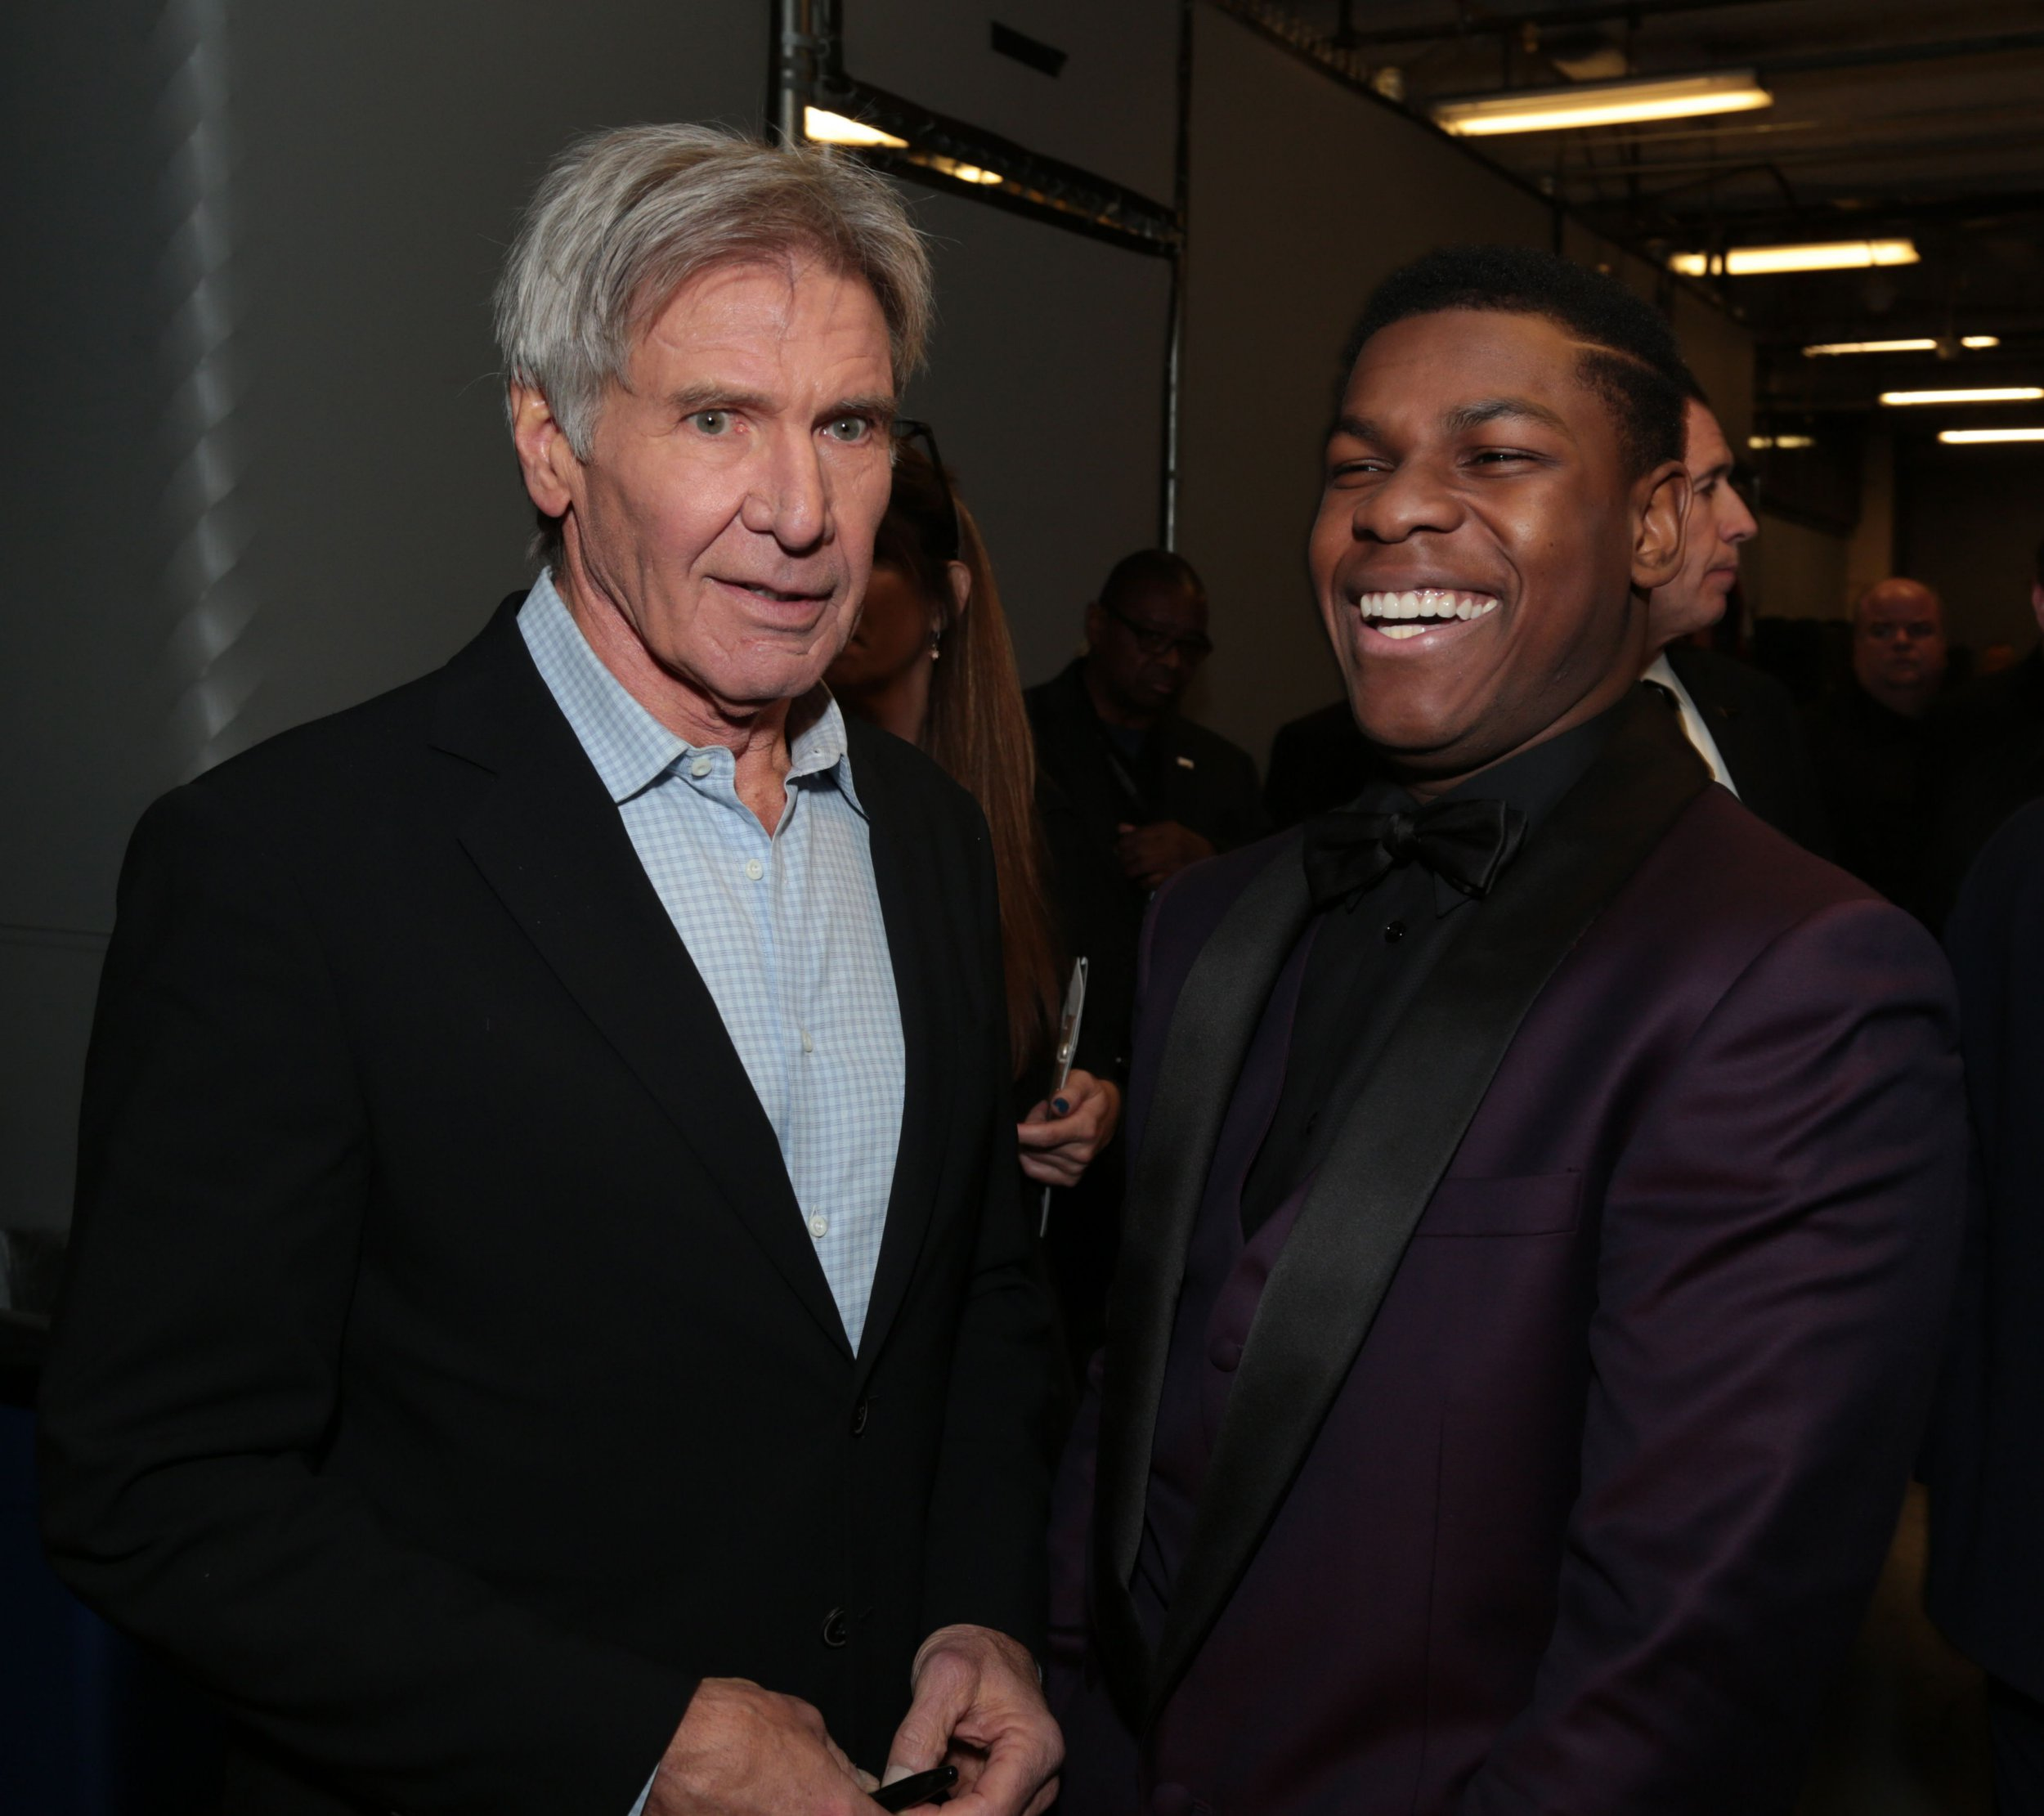 John Boyega and Harrison Ford take first class flight to Tokyo together and have ultimate #bants